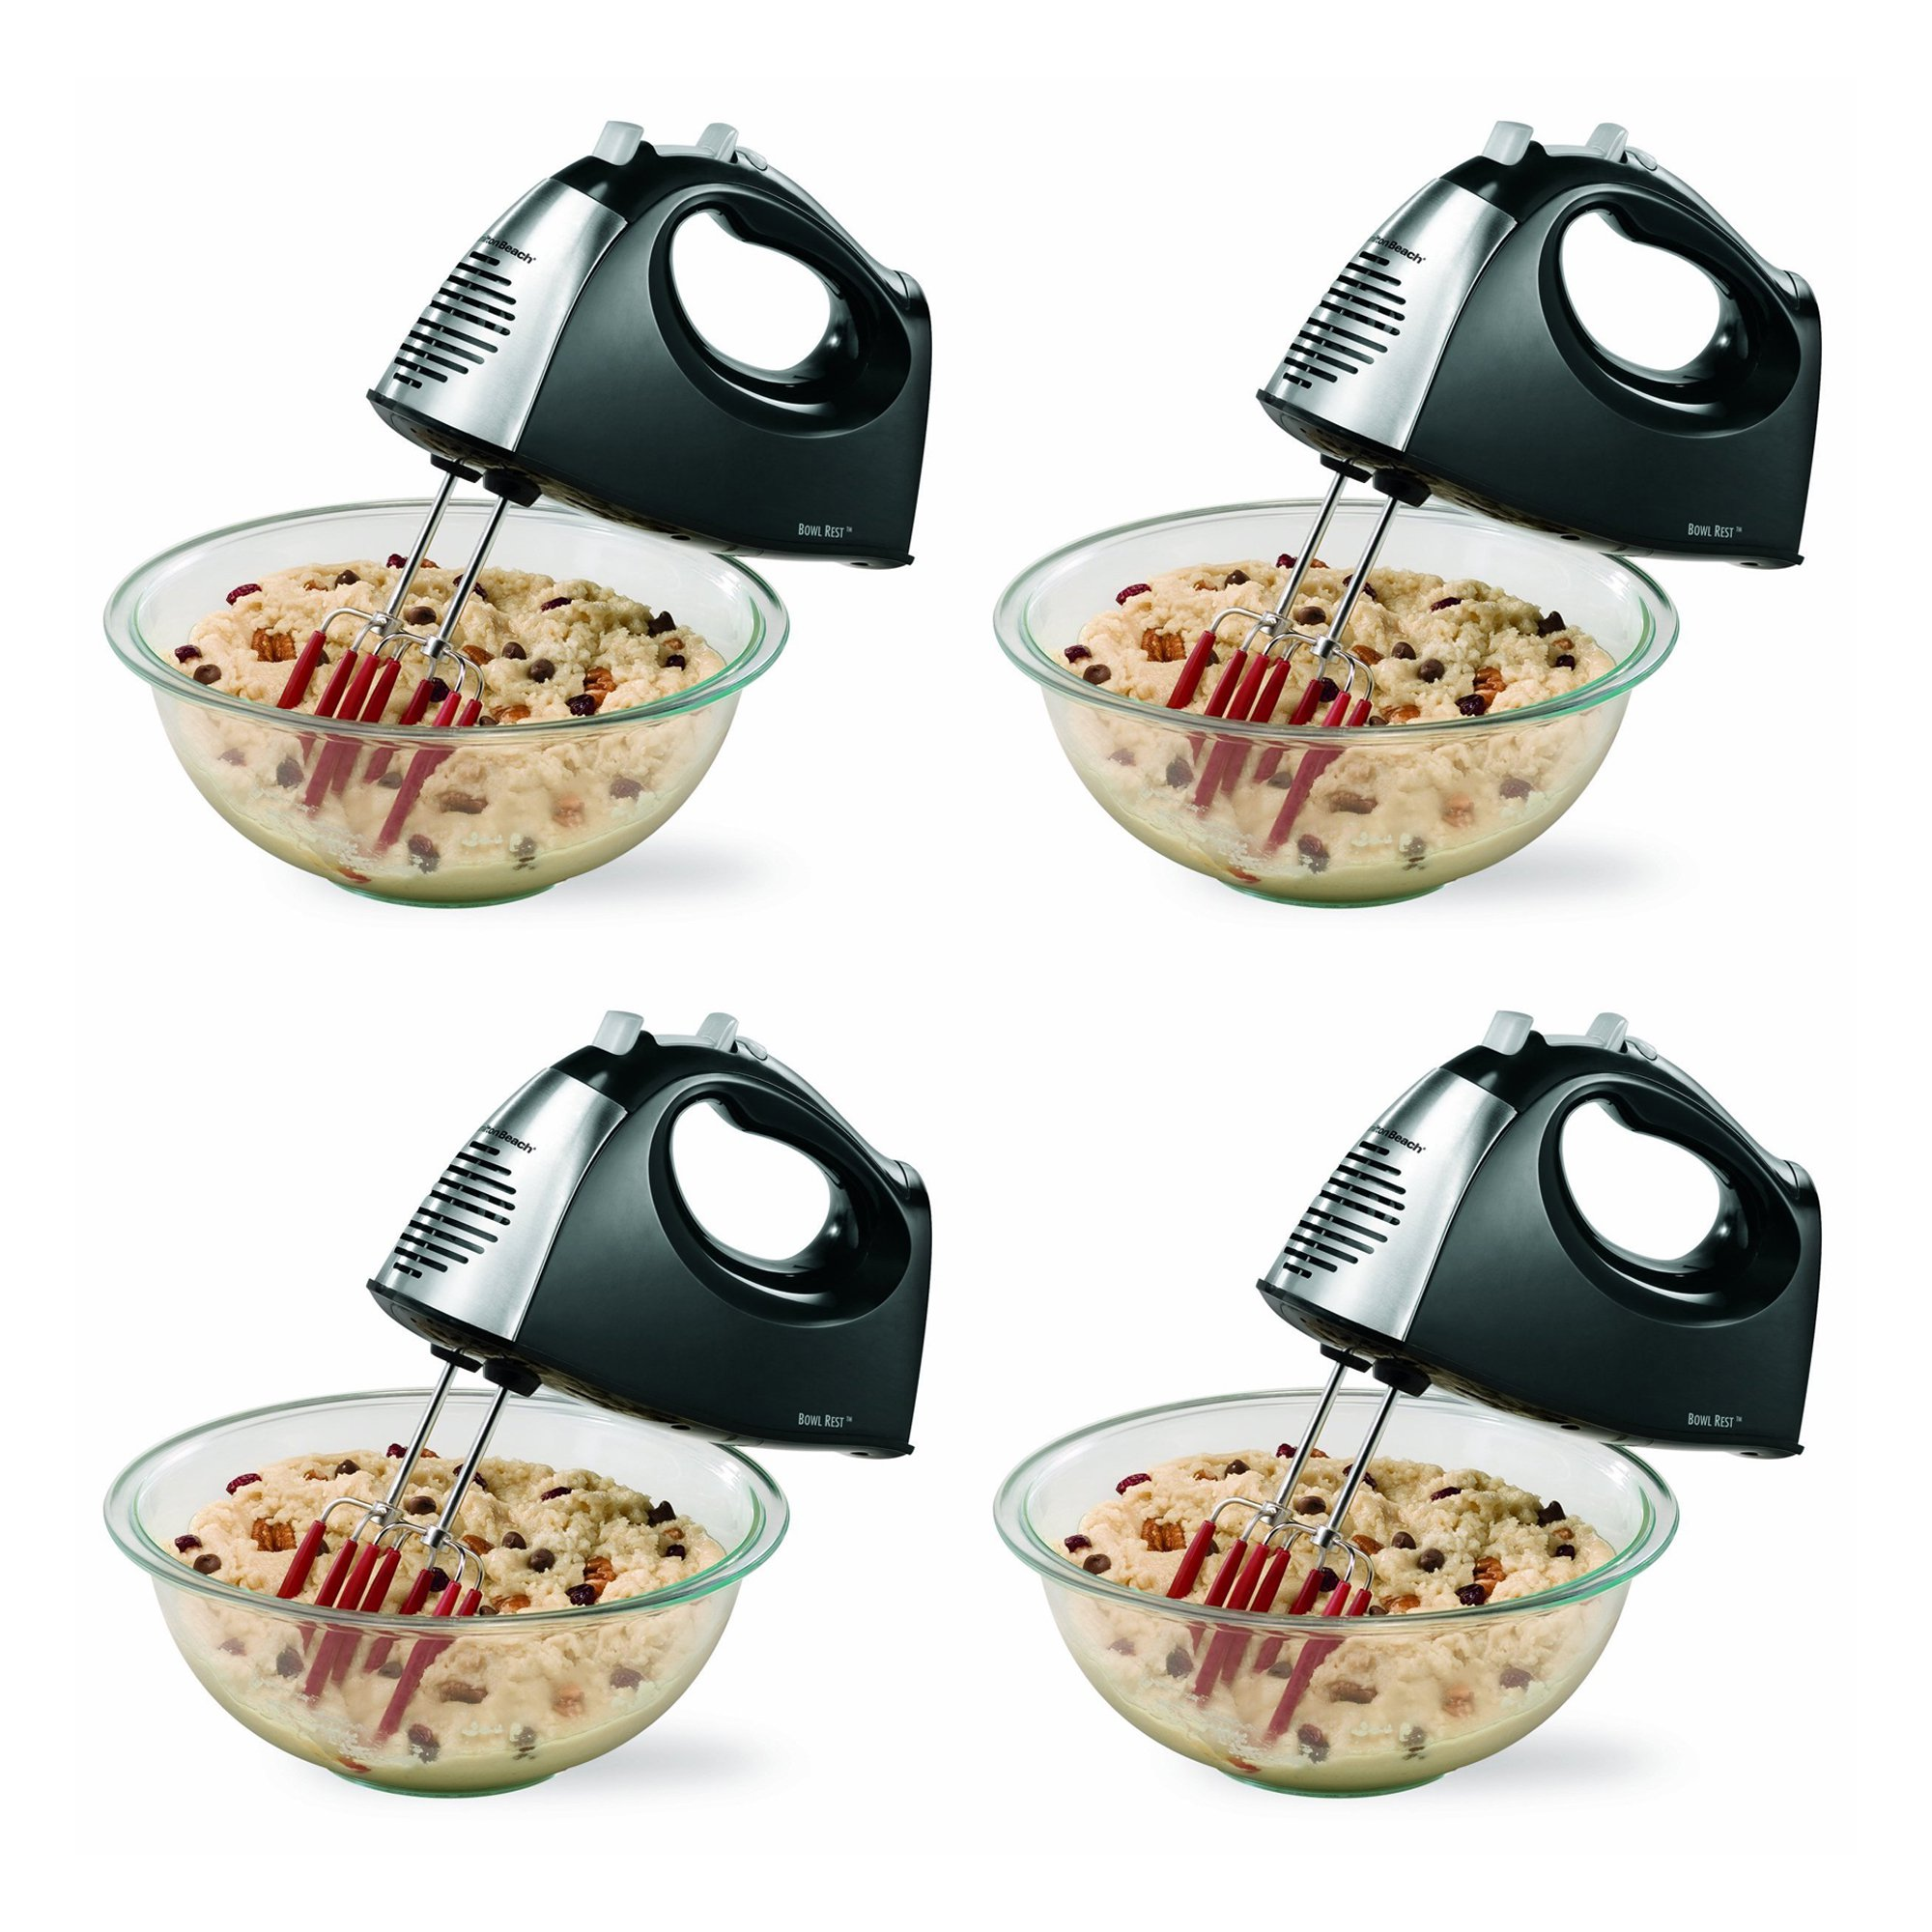 Hamilton Beach SoftScrape 6 Speed Electric Hand Mixer with Storage Case (4 Pack)